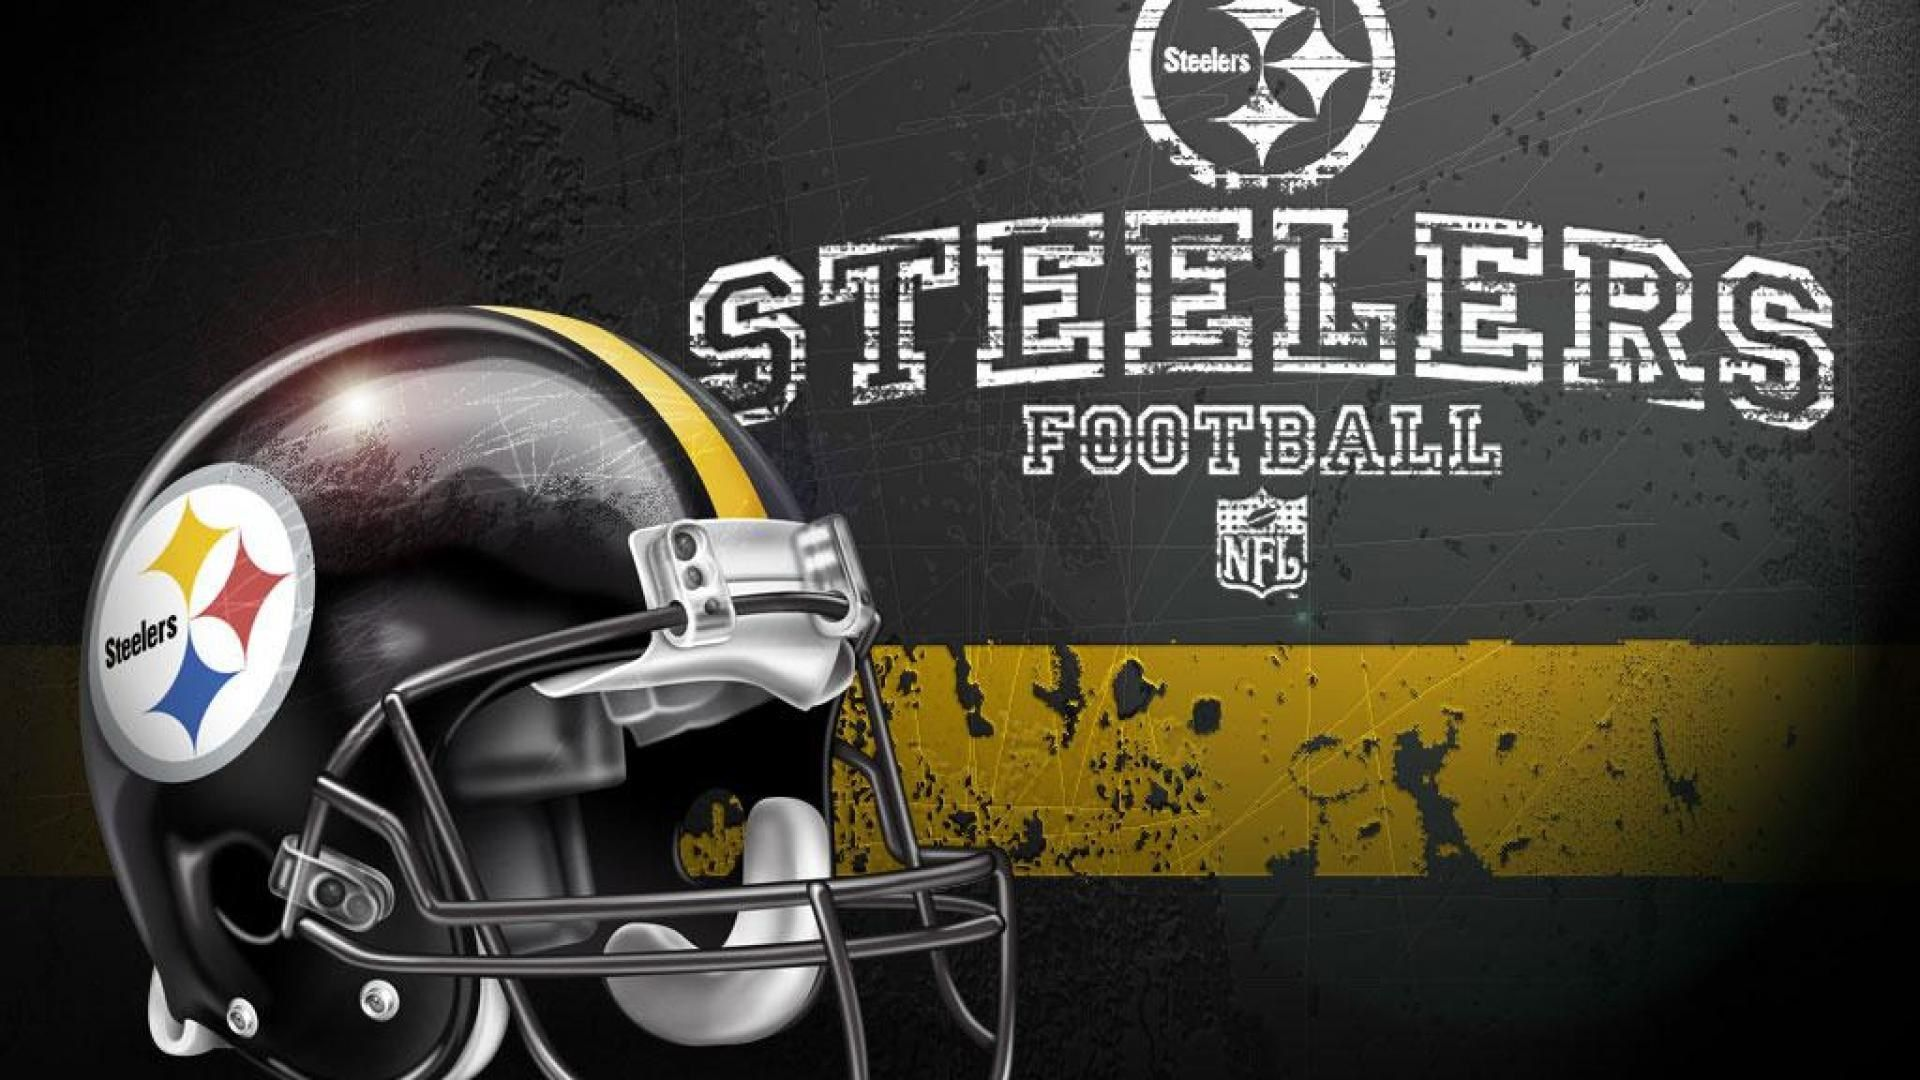 1920 x 1080px steelers desktop backgrounds wallpaper by caldwell 1920 x 1080px steelers desktop backgrounds wallpaper by caldwell fletcher voltagebd Gallery